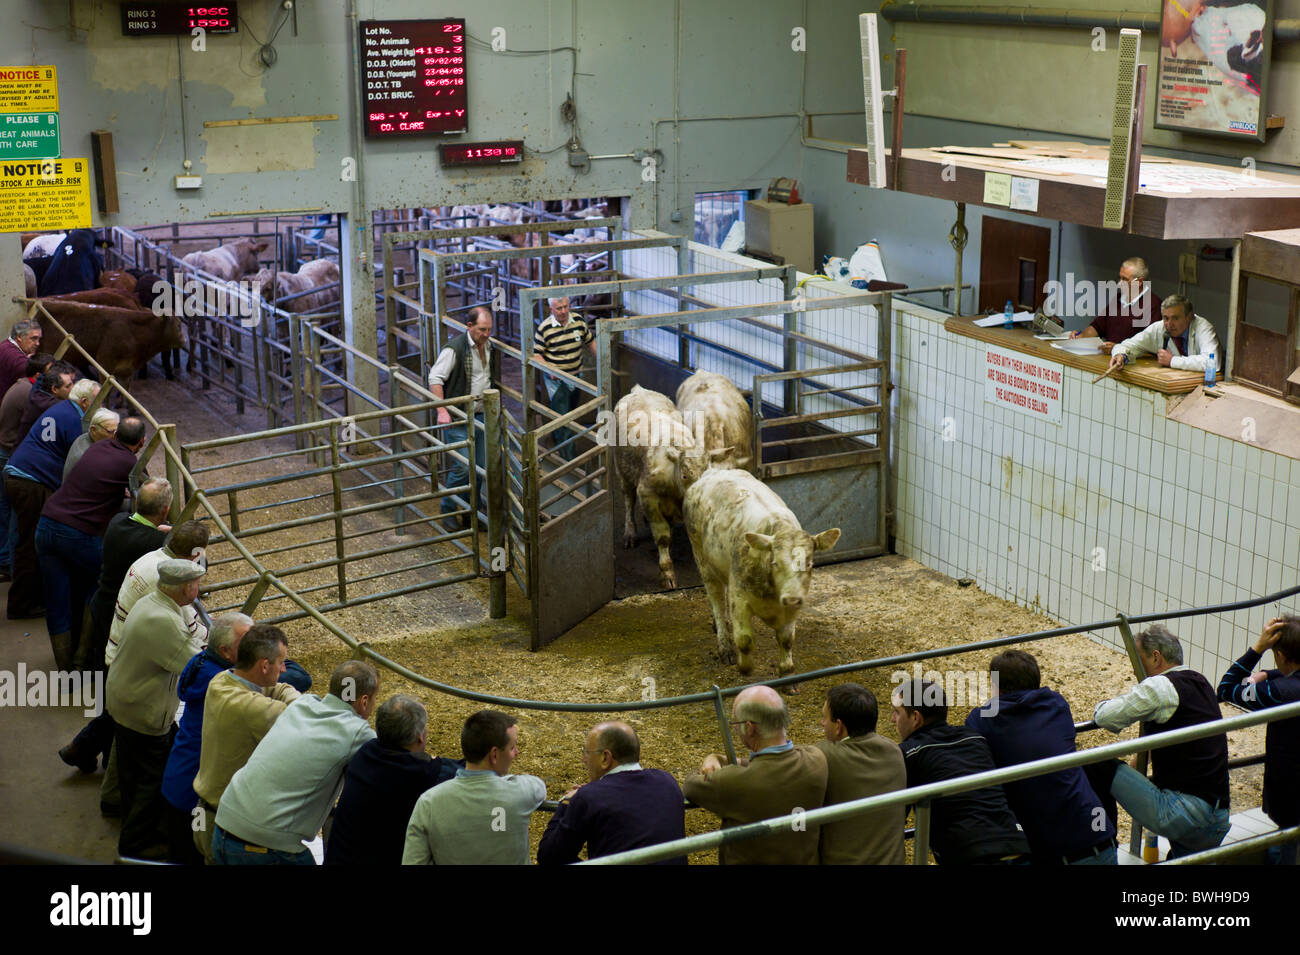 Farmers at cattle auction in Ennis, County Clare, Ireland - Stock Image